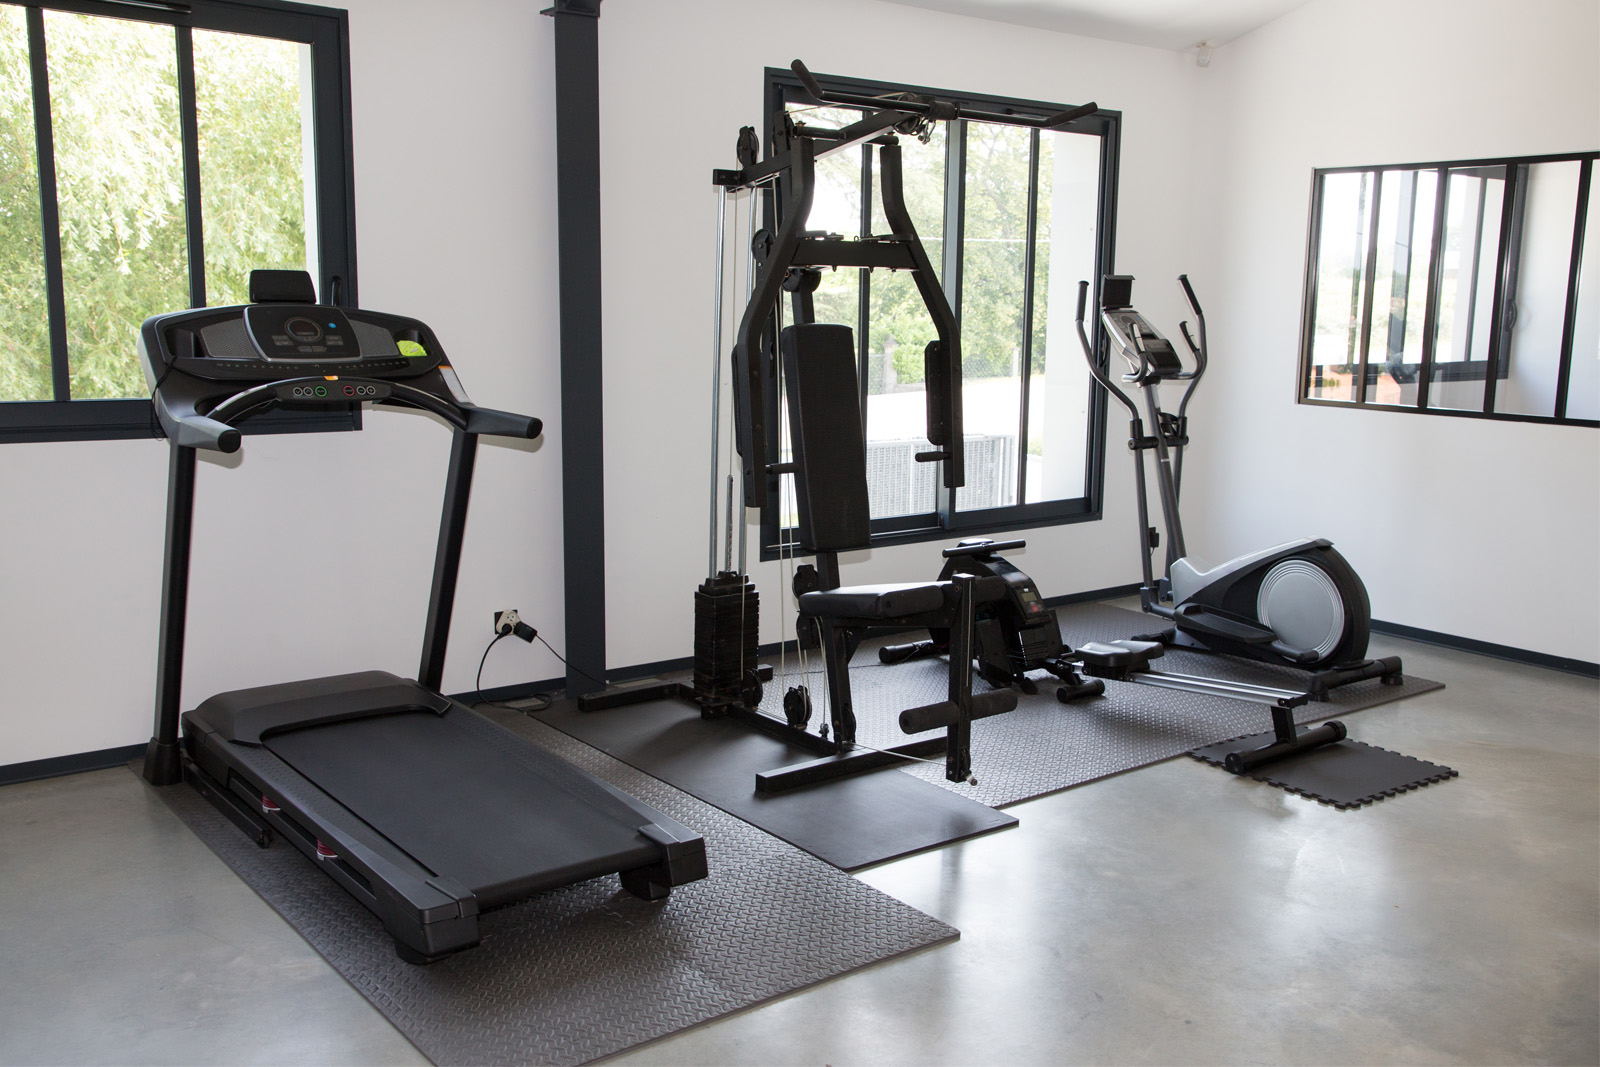 Cherie-Barber_Renovating-For-Profit_Covid-Home-Trends-Gym